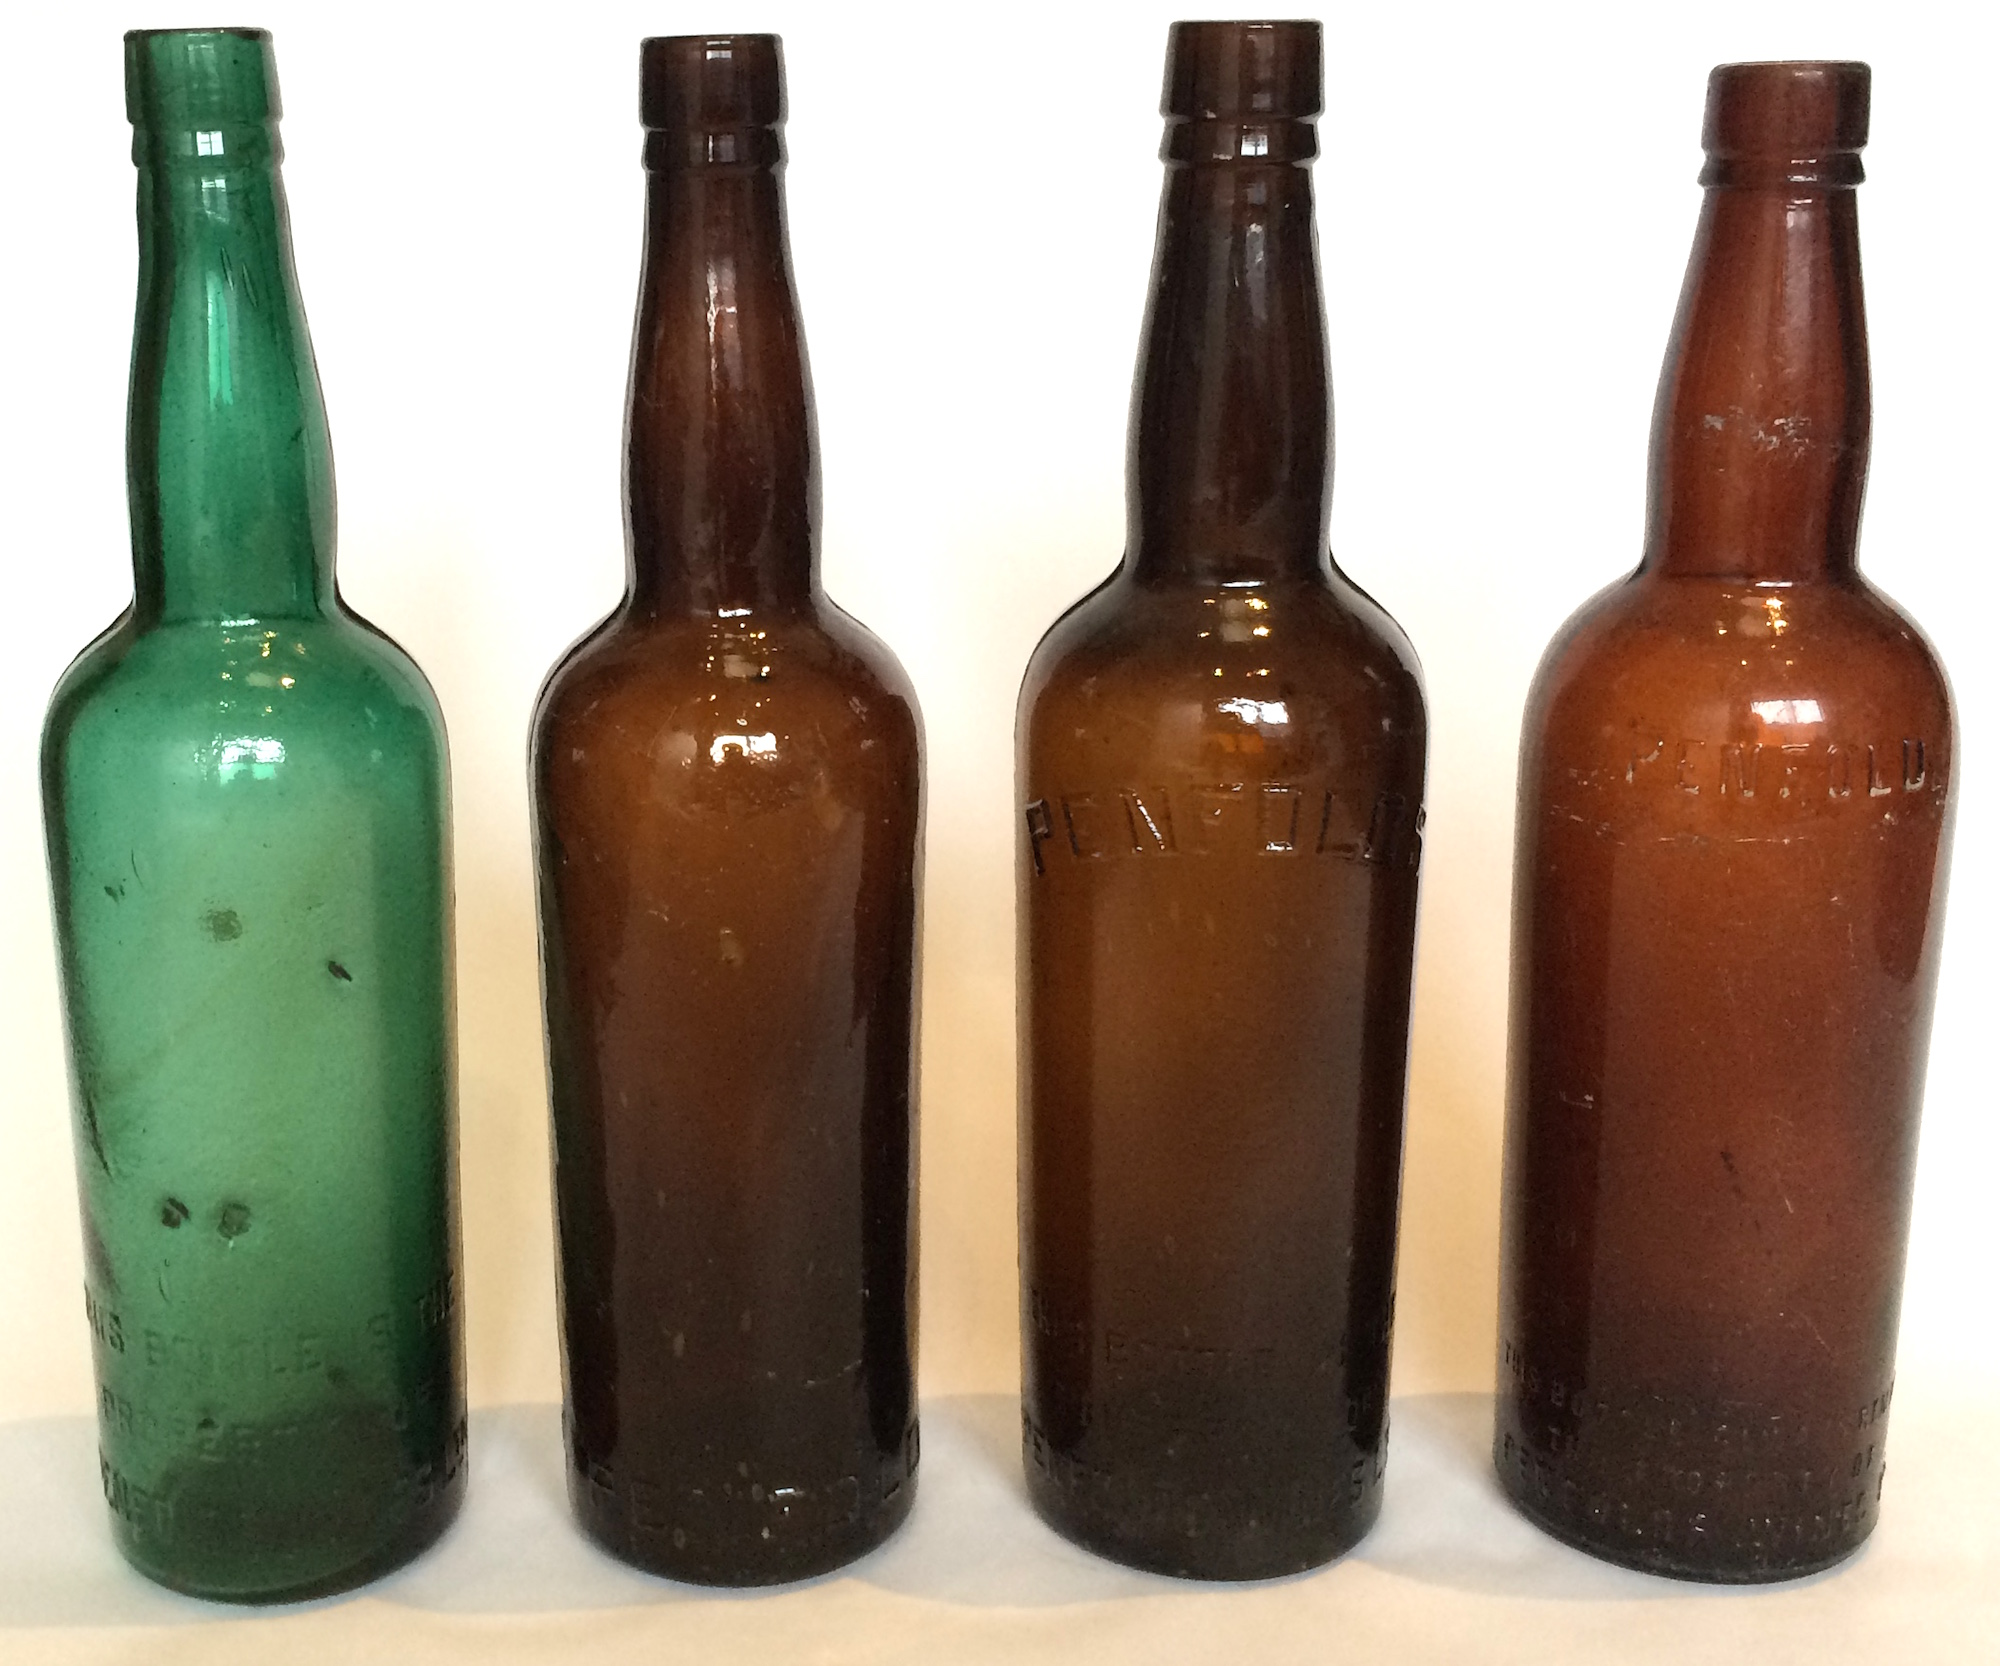 Penfolds Fortified bottles. c1910s-1930s